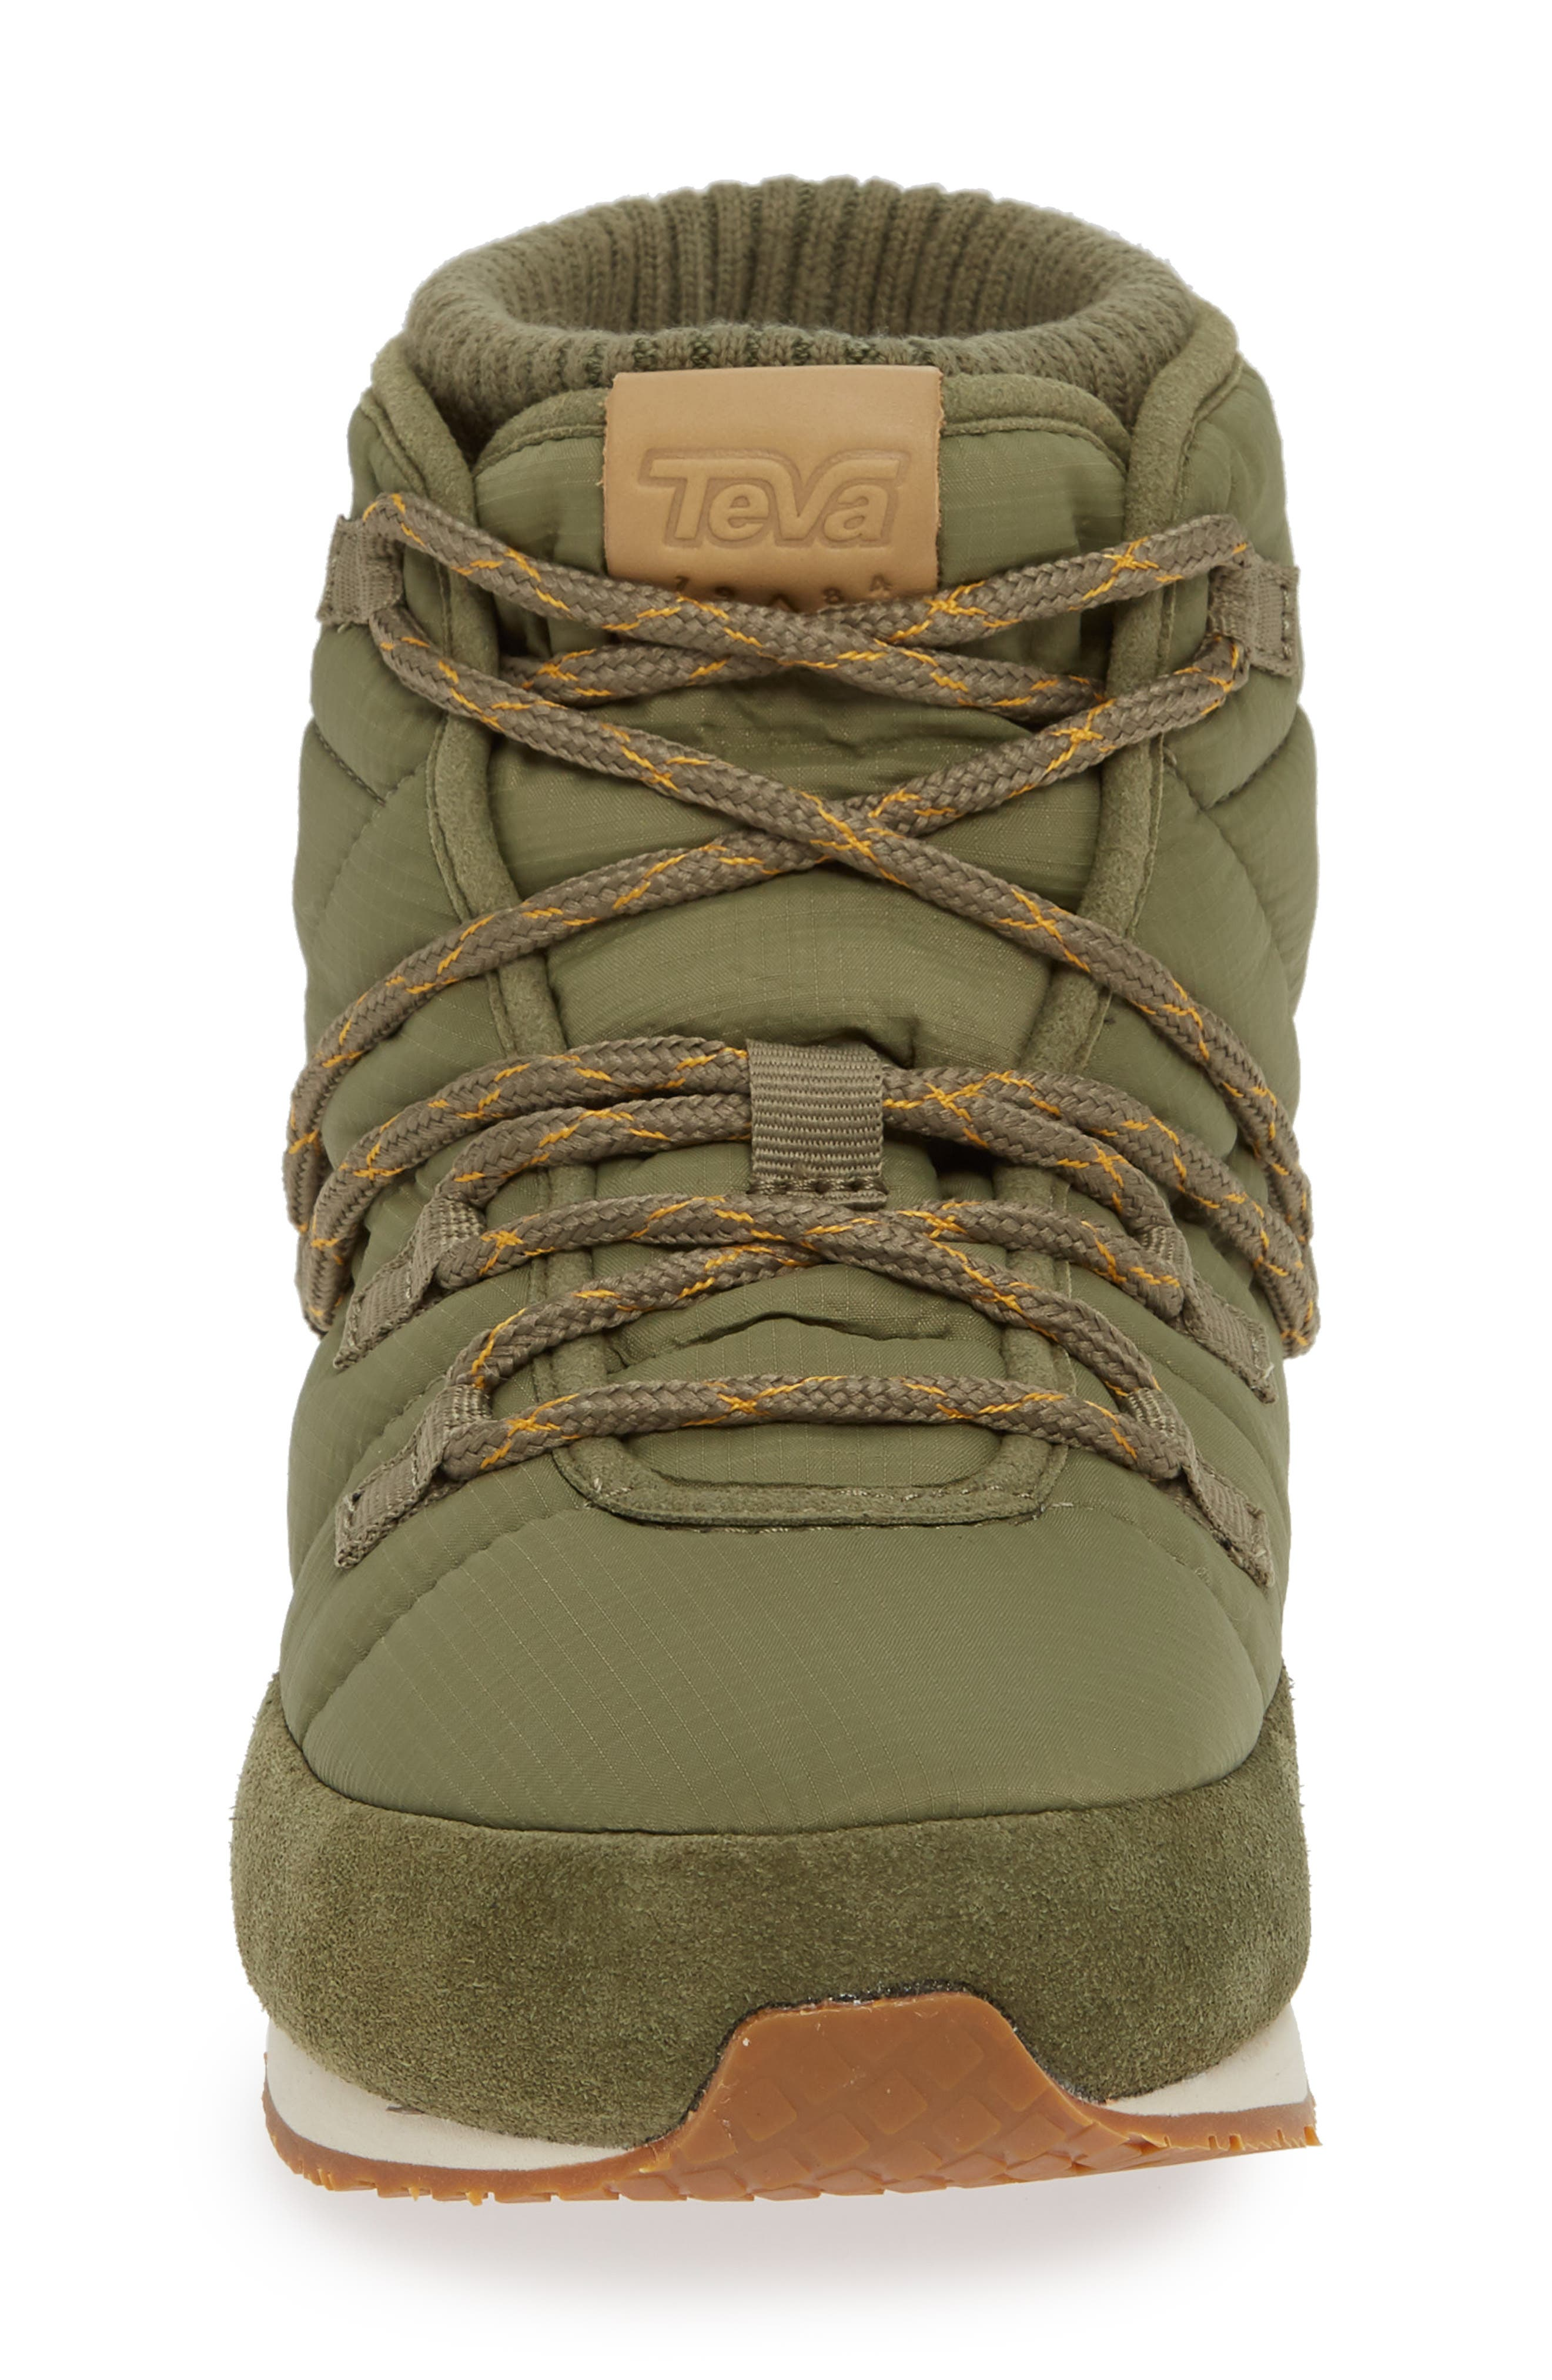 TEVA, Ember Lace-Up Winter Bootie, Alternate thumbnail 4, color, BURNT OLIVE FABRIC